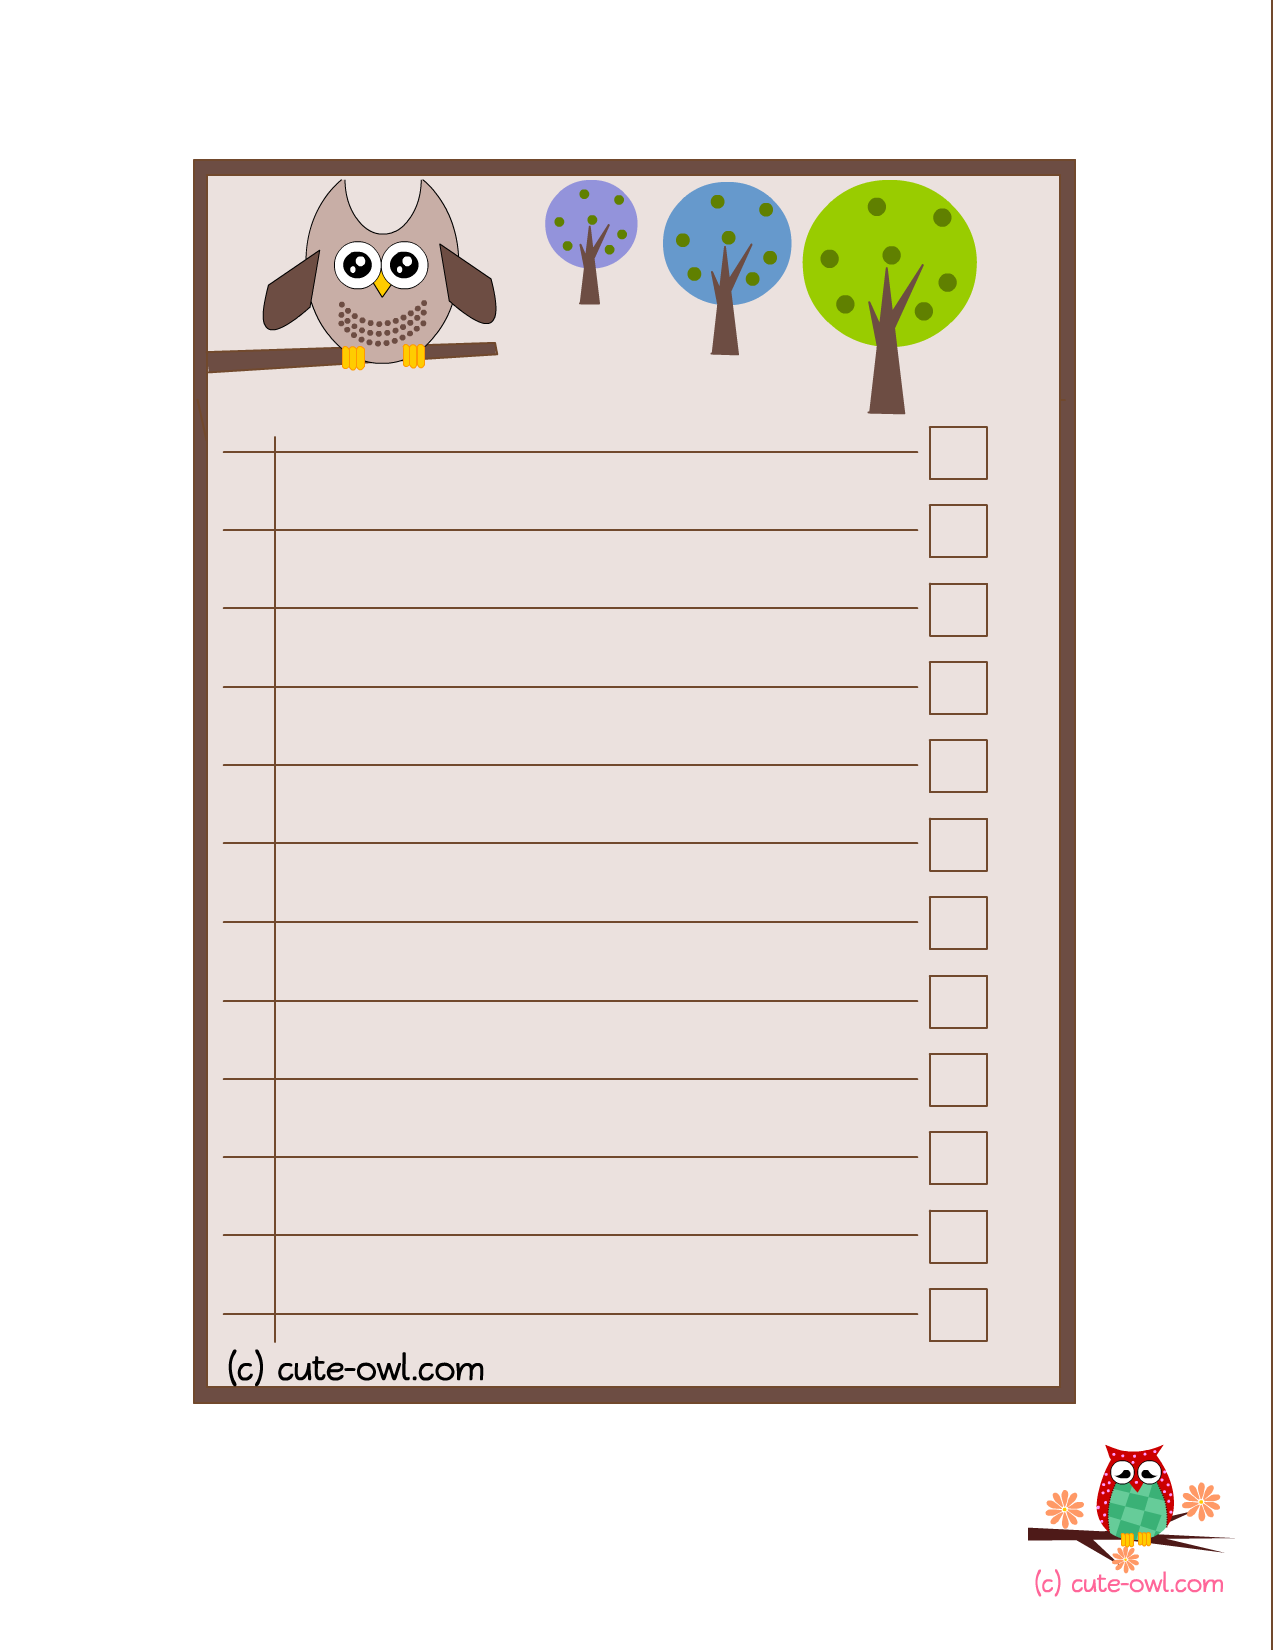 4 cute owl to do lists | for the love of owls | pinterest | owl